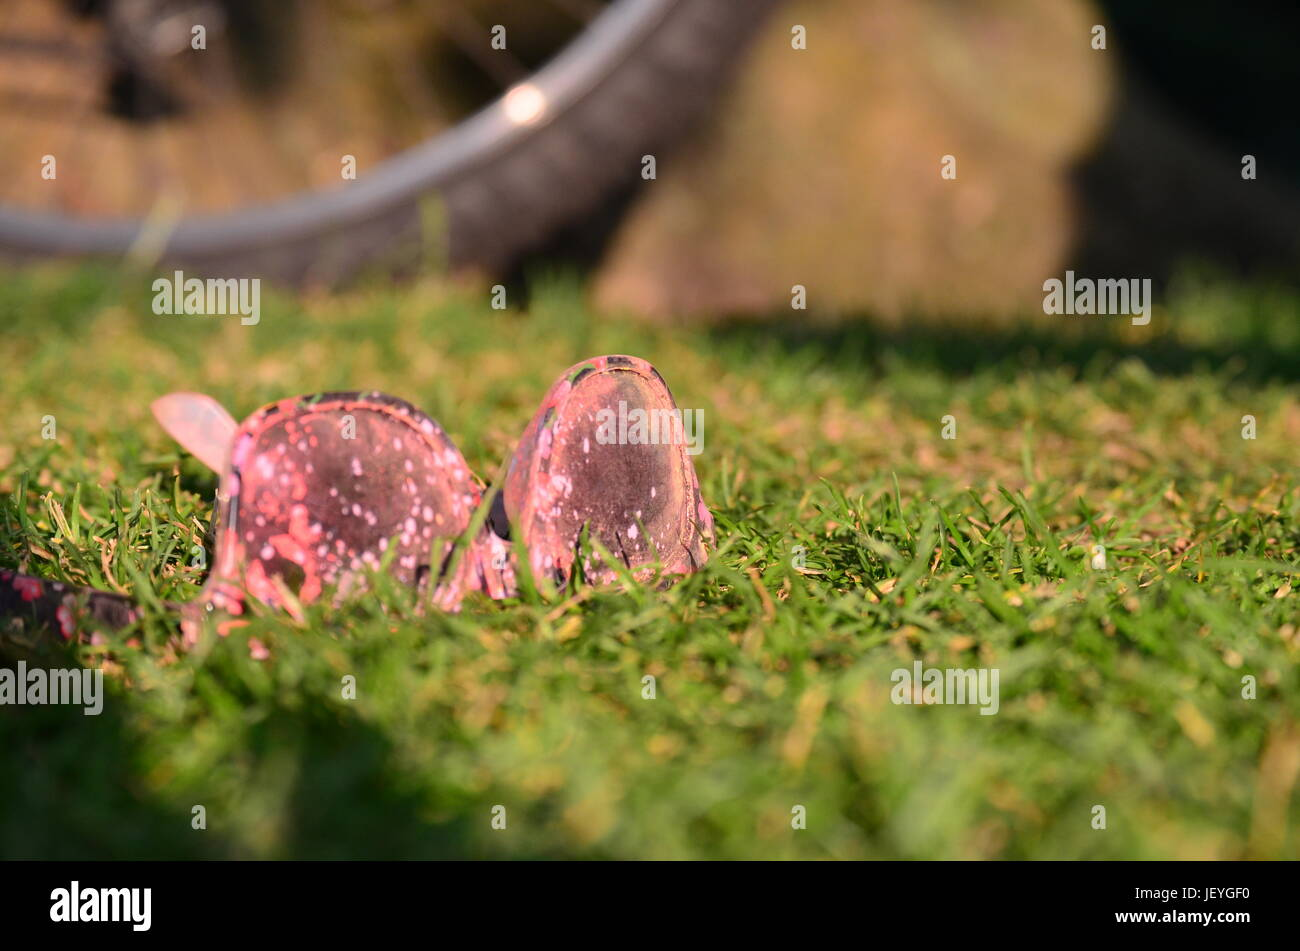 Sunglass sitting on the Grass at Color Summer Festival - Stock Image